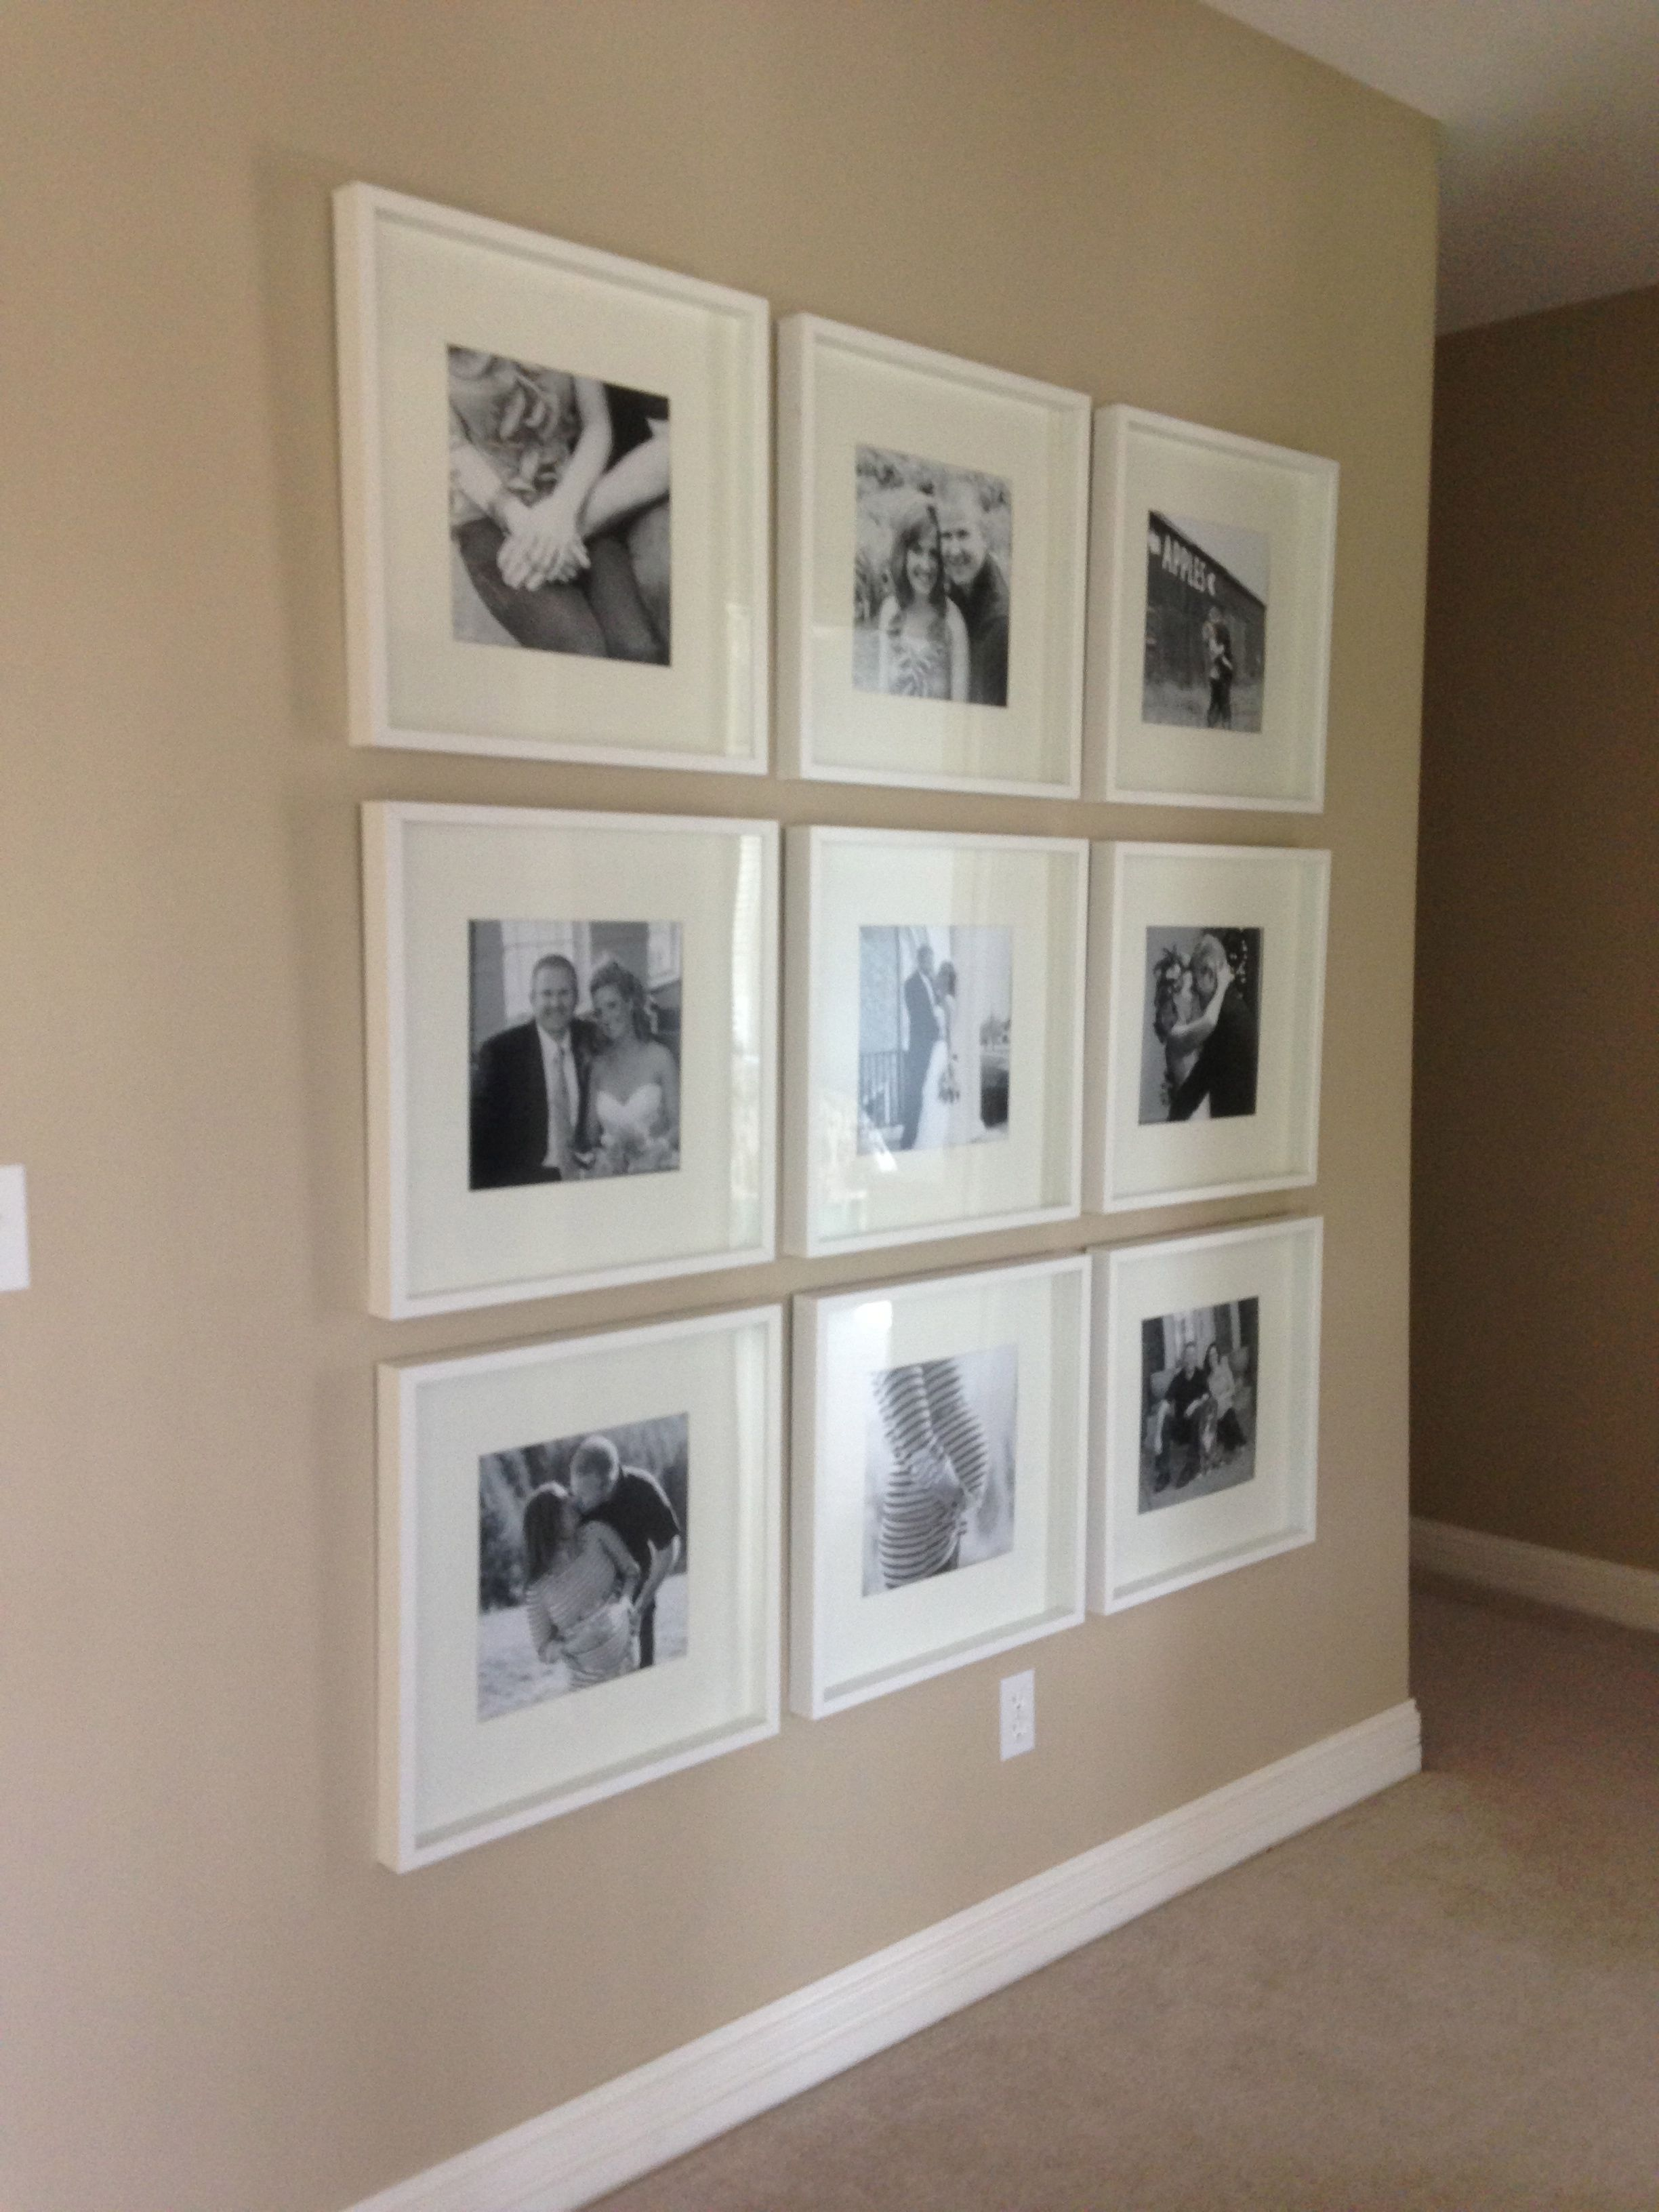 Black And White Photo Wall With Ikea Frames Chronological Order Plan On Incor Diseno De Pared De Galeria Habitaciones De La Casa Decoracion Interiores Casas